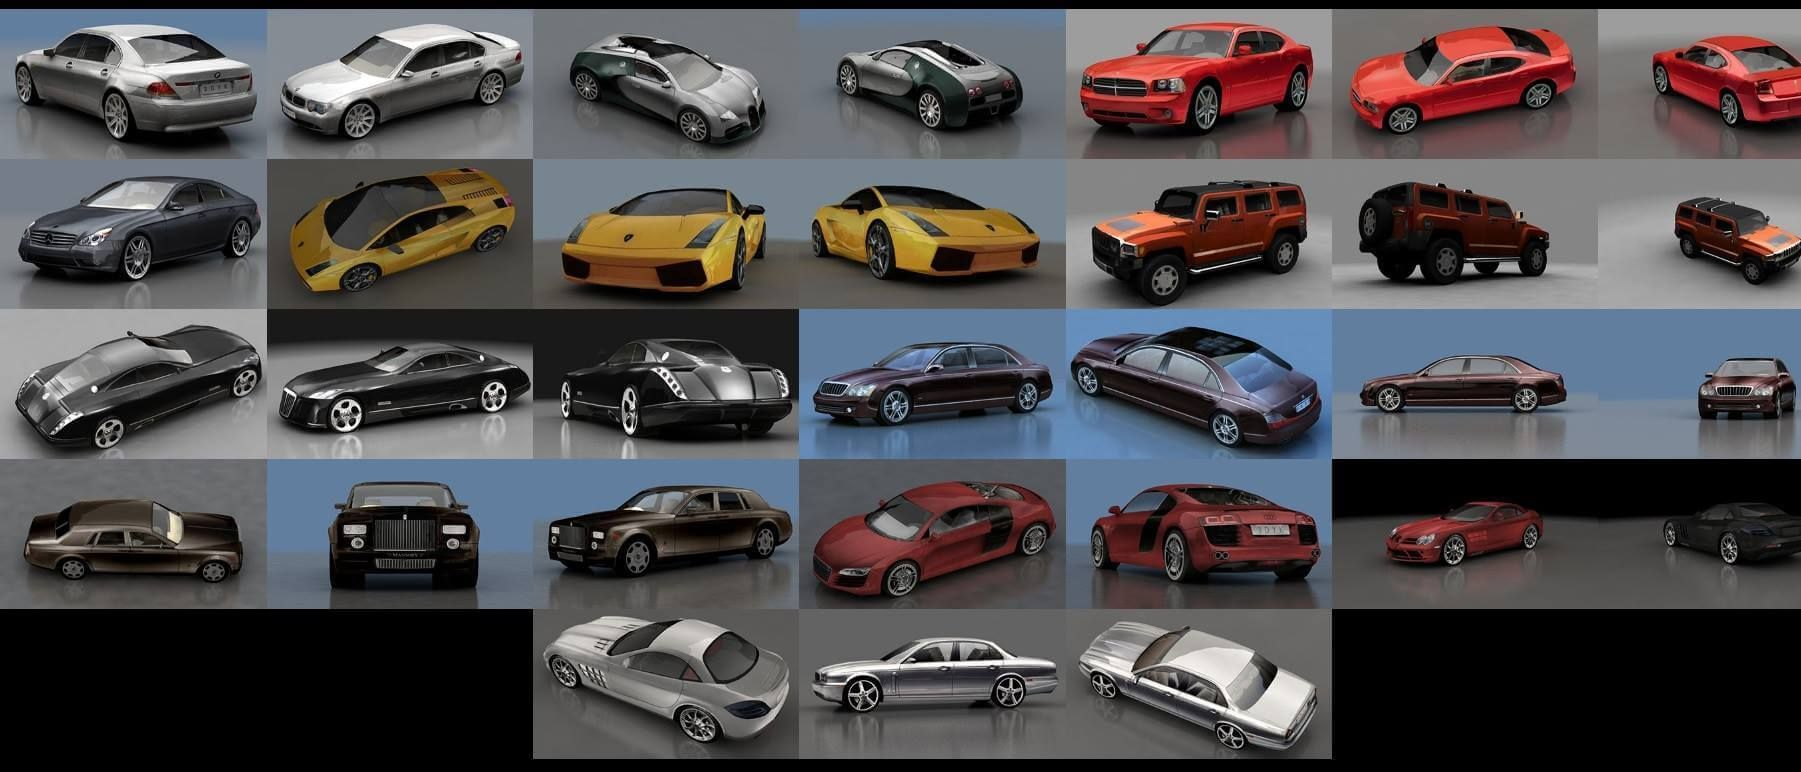 3d Model Low Poly Luxury Cars Free Download Car 3d Model Luxury Cars 3d Model